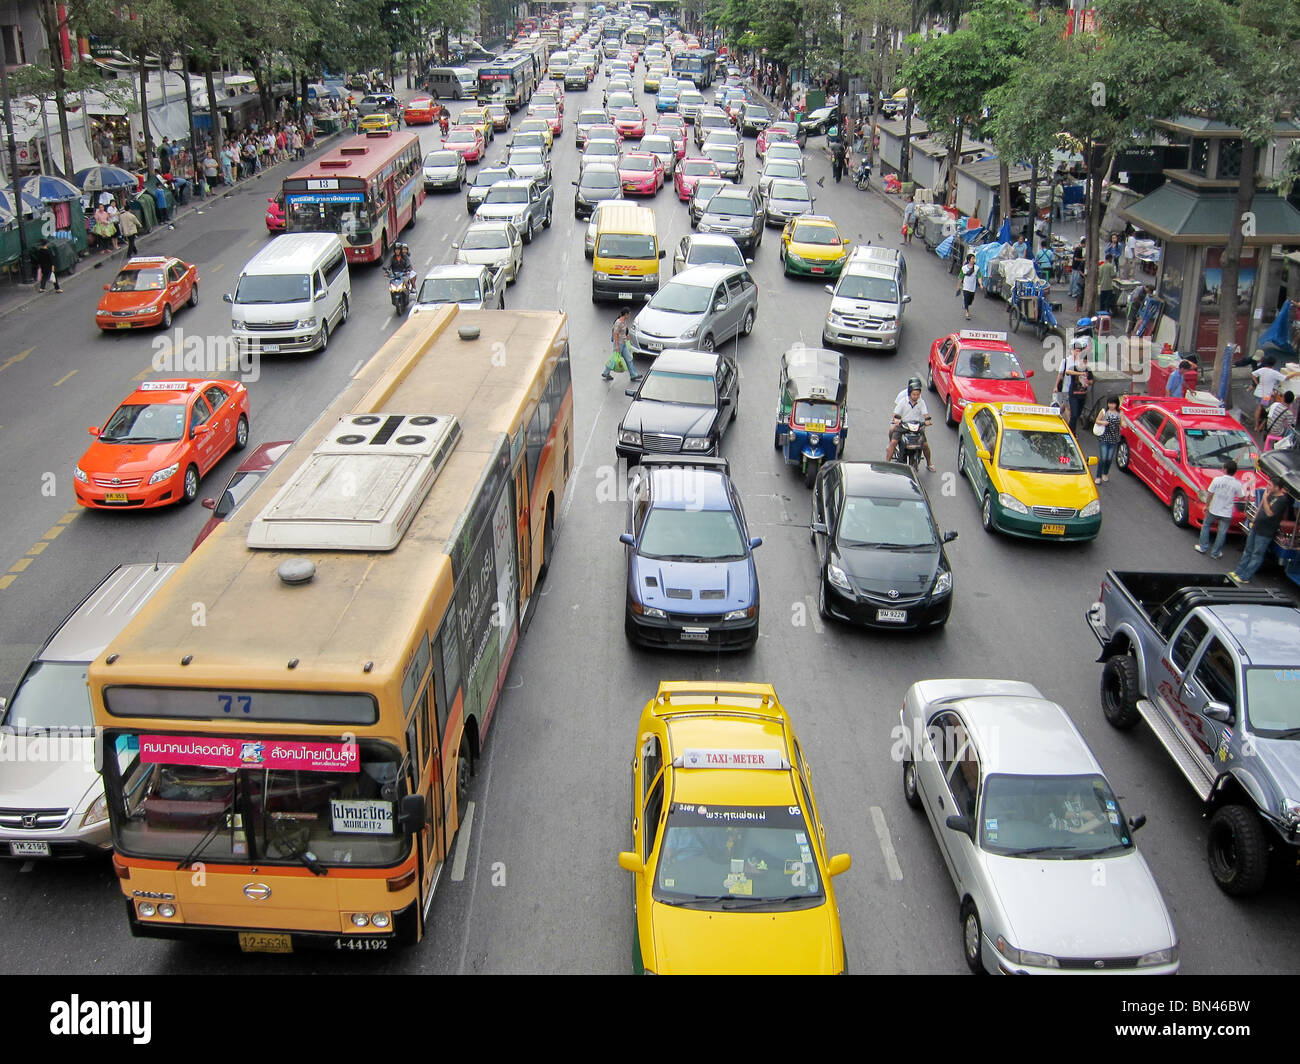 road street traffic jam gridlock congestion in Bangkok thailand asia - Stock Image